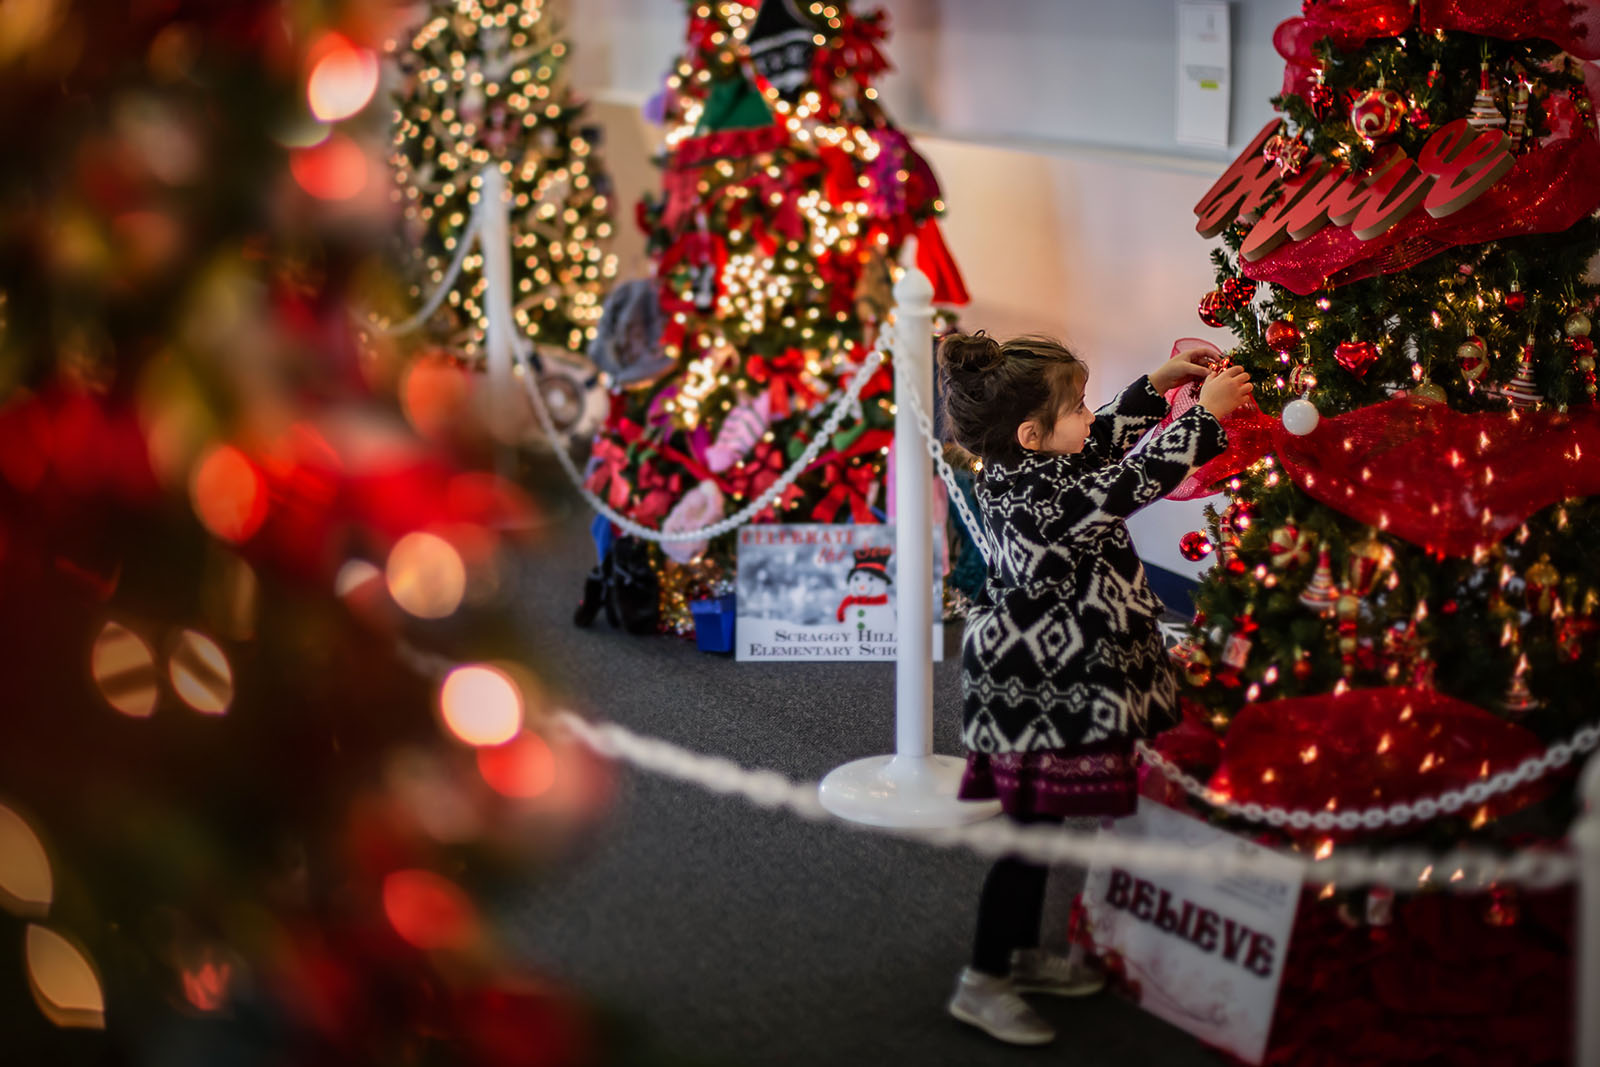 Add magic to indoor holiday photos with bokeh